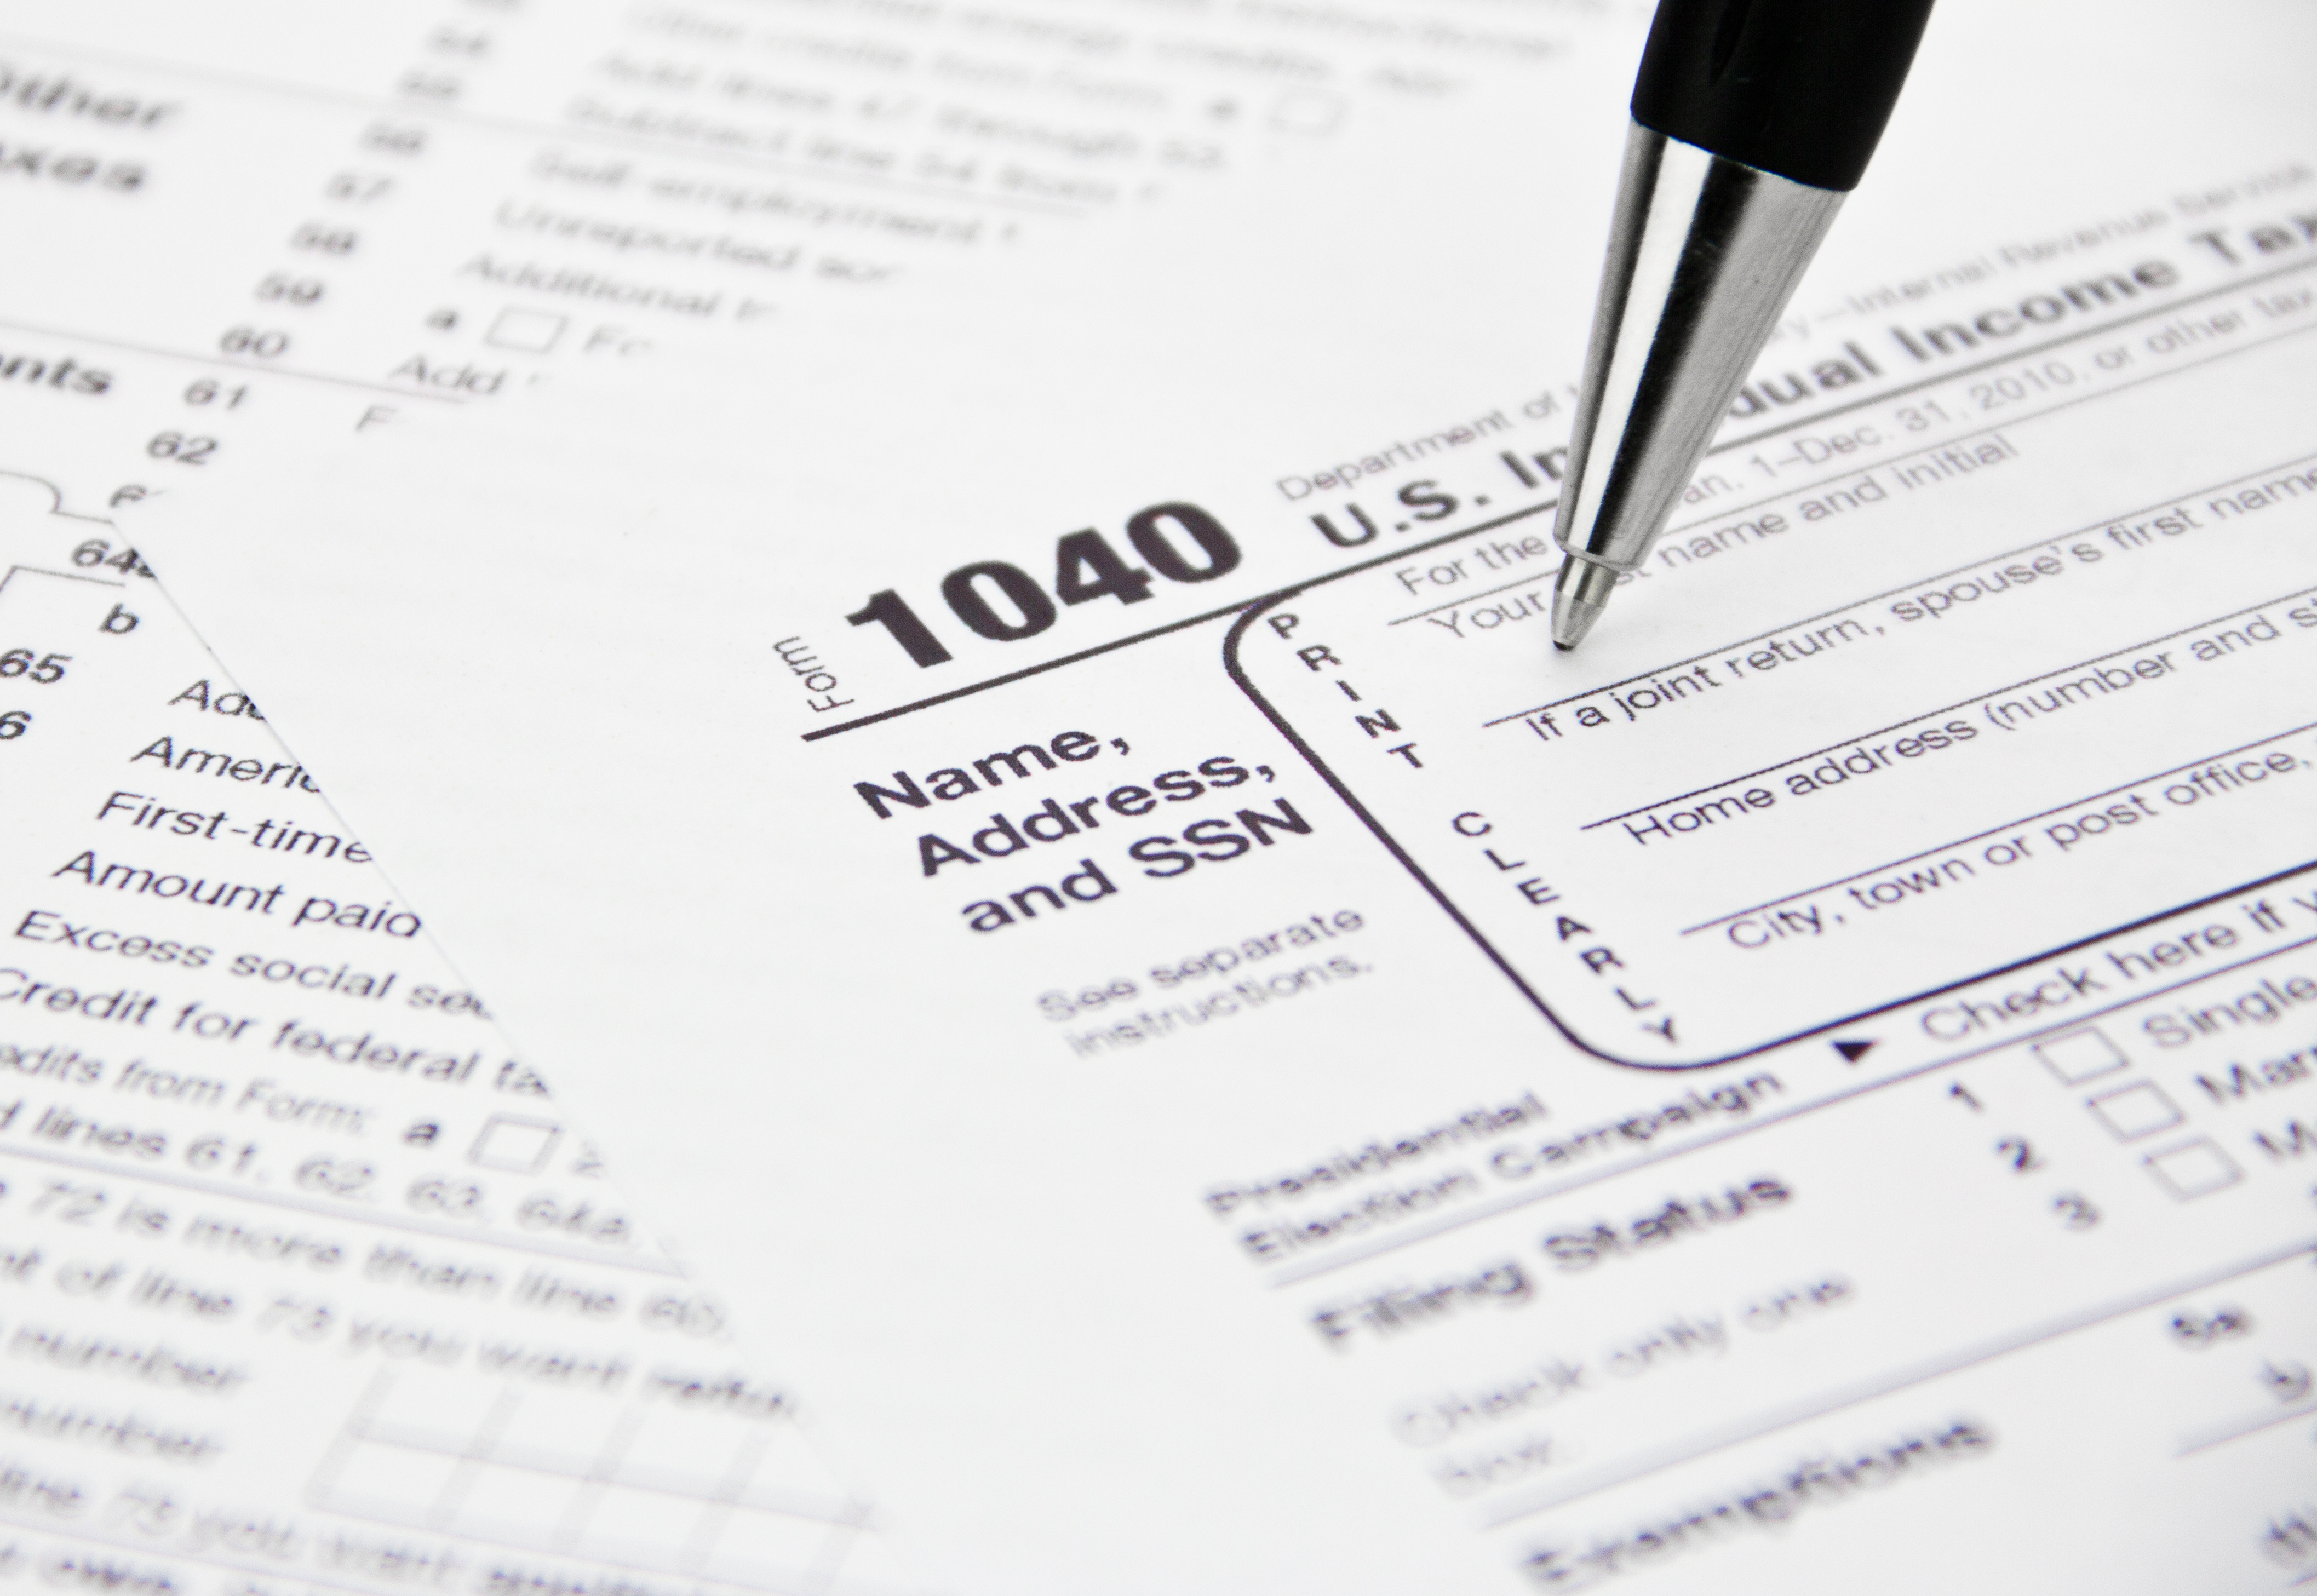 Time is ticking down for income tax return filers | WBFO